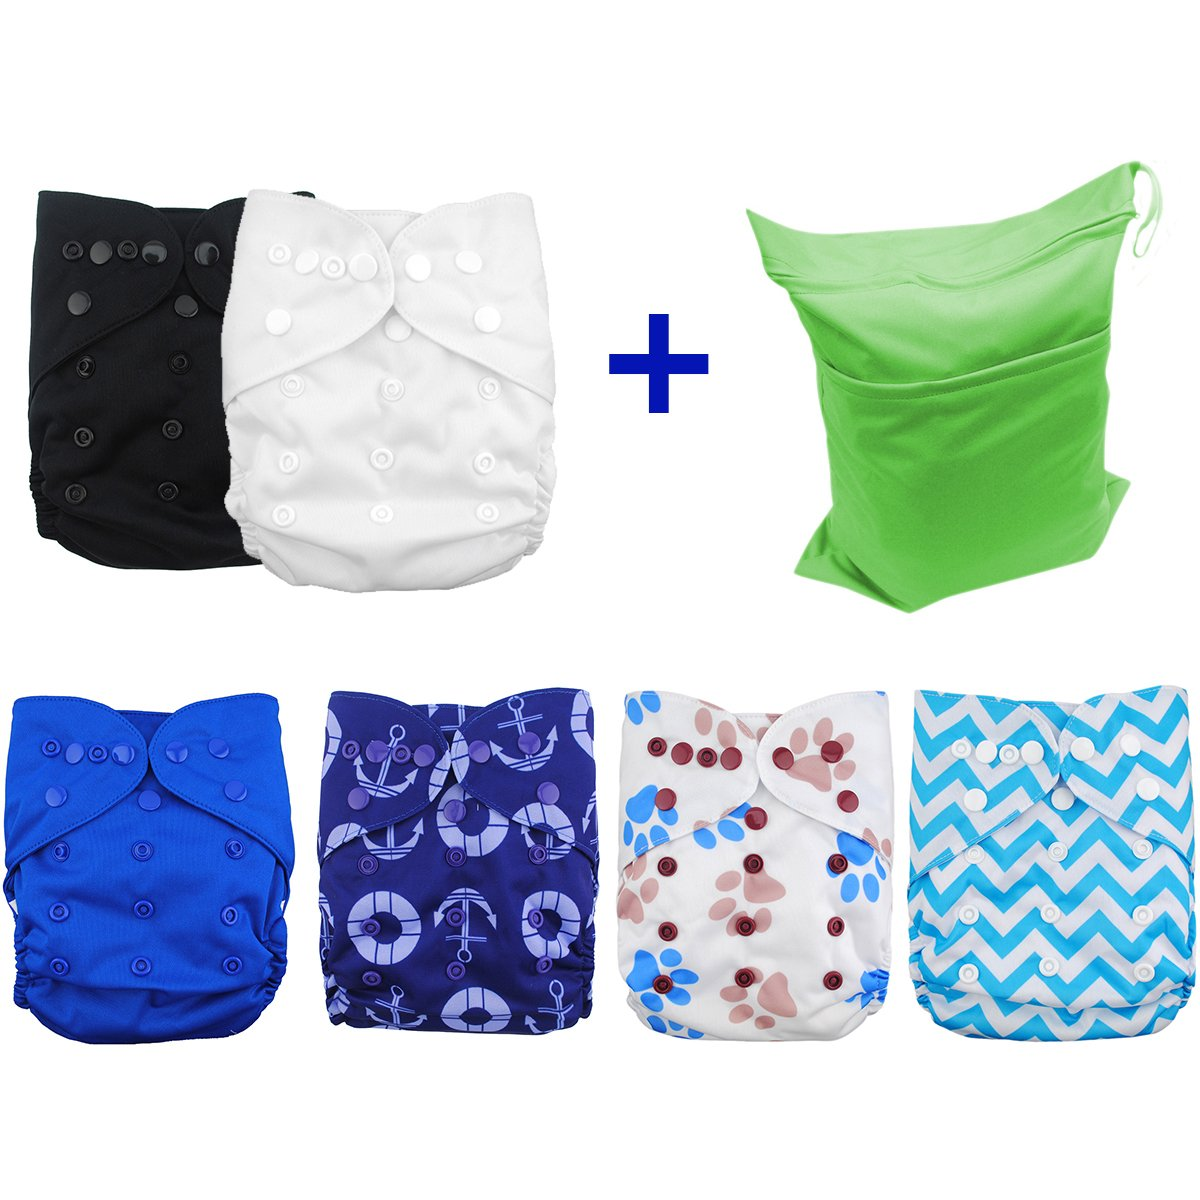 Babygoal 6pcs Baby Cloth Diaper Covers--Adjustable Reusable Washable Cloth Diaper Covers for Fitted Diapers and Prefolds Baby Gift Sets for Boy 6DCF02